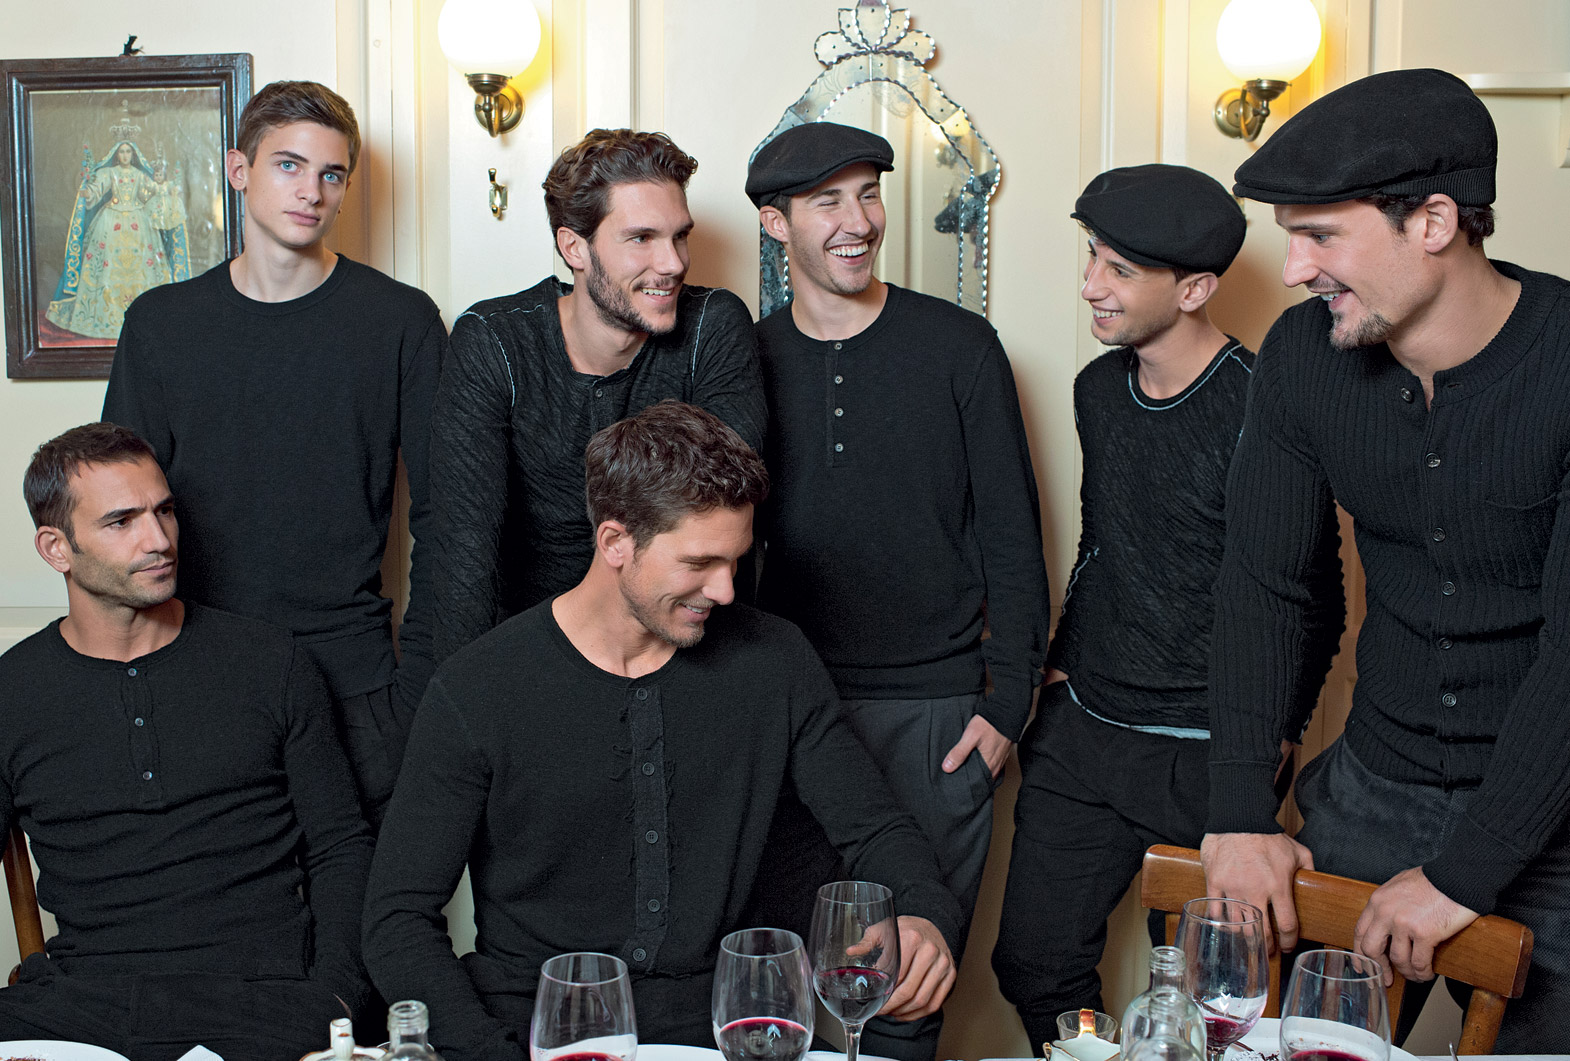 Adam Senn, Will Chalker, Sam Webb & Others Pose for Dolce & Gabbana Fall/Winter 2013 Lookbook